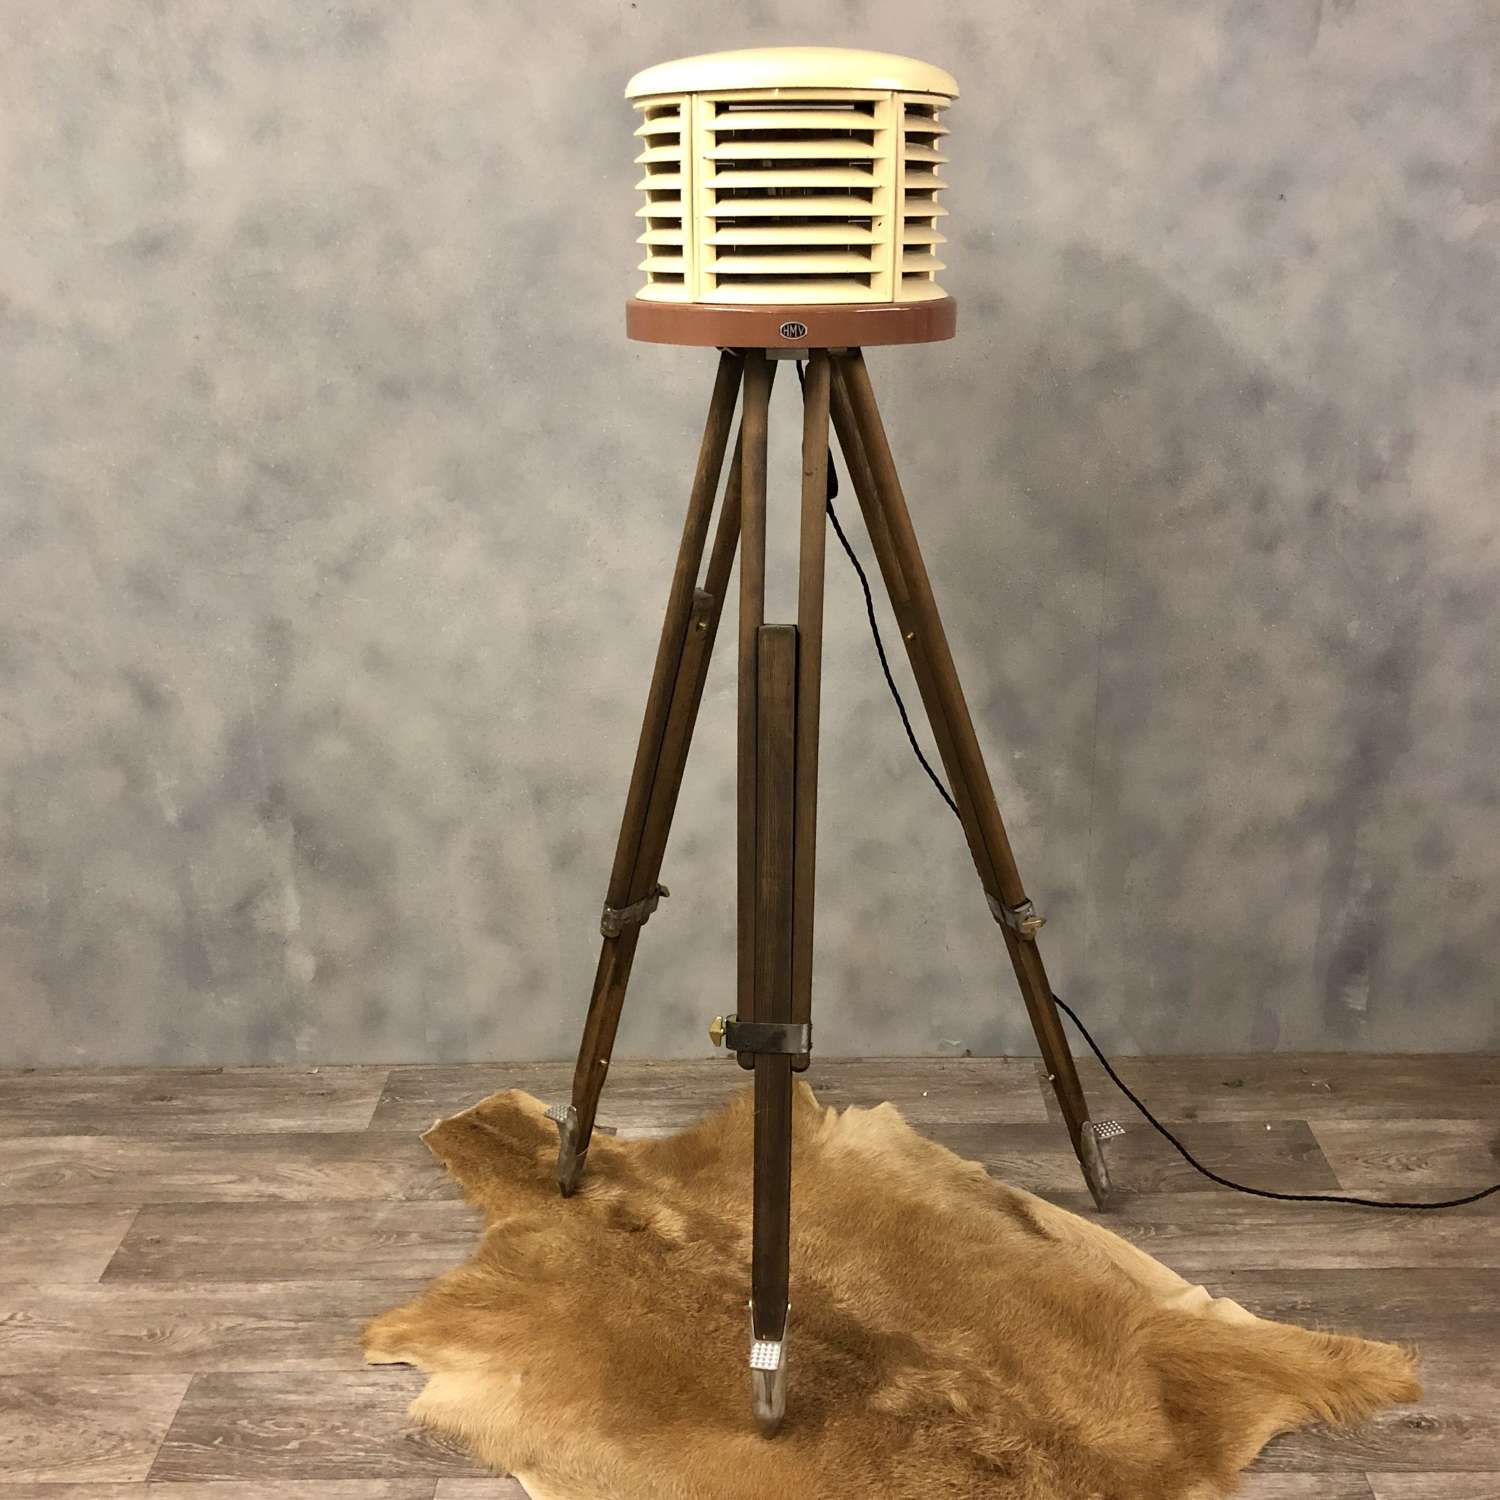 Converted HMV heater lamp and vintage tripod